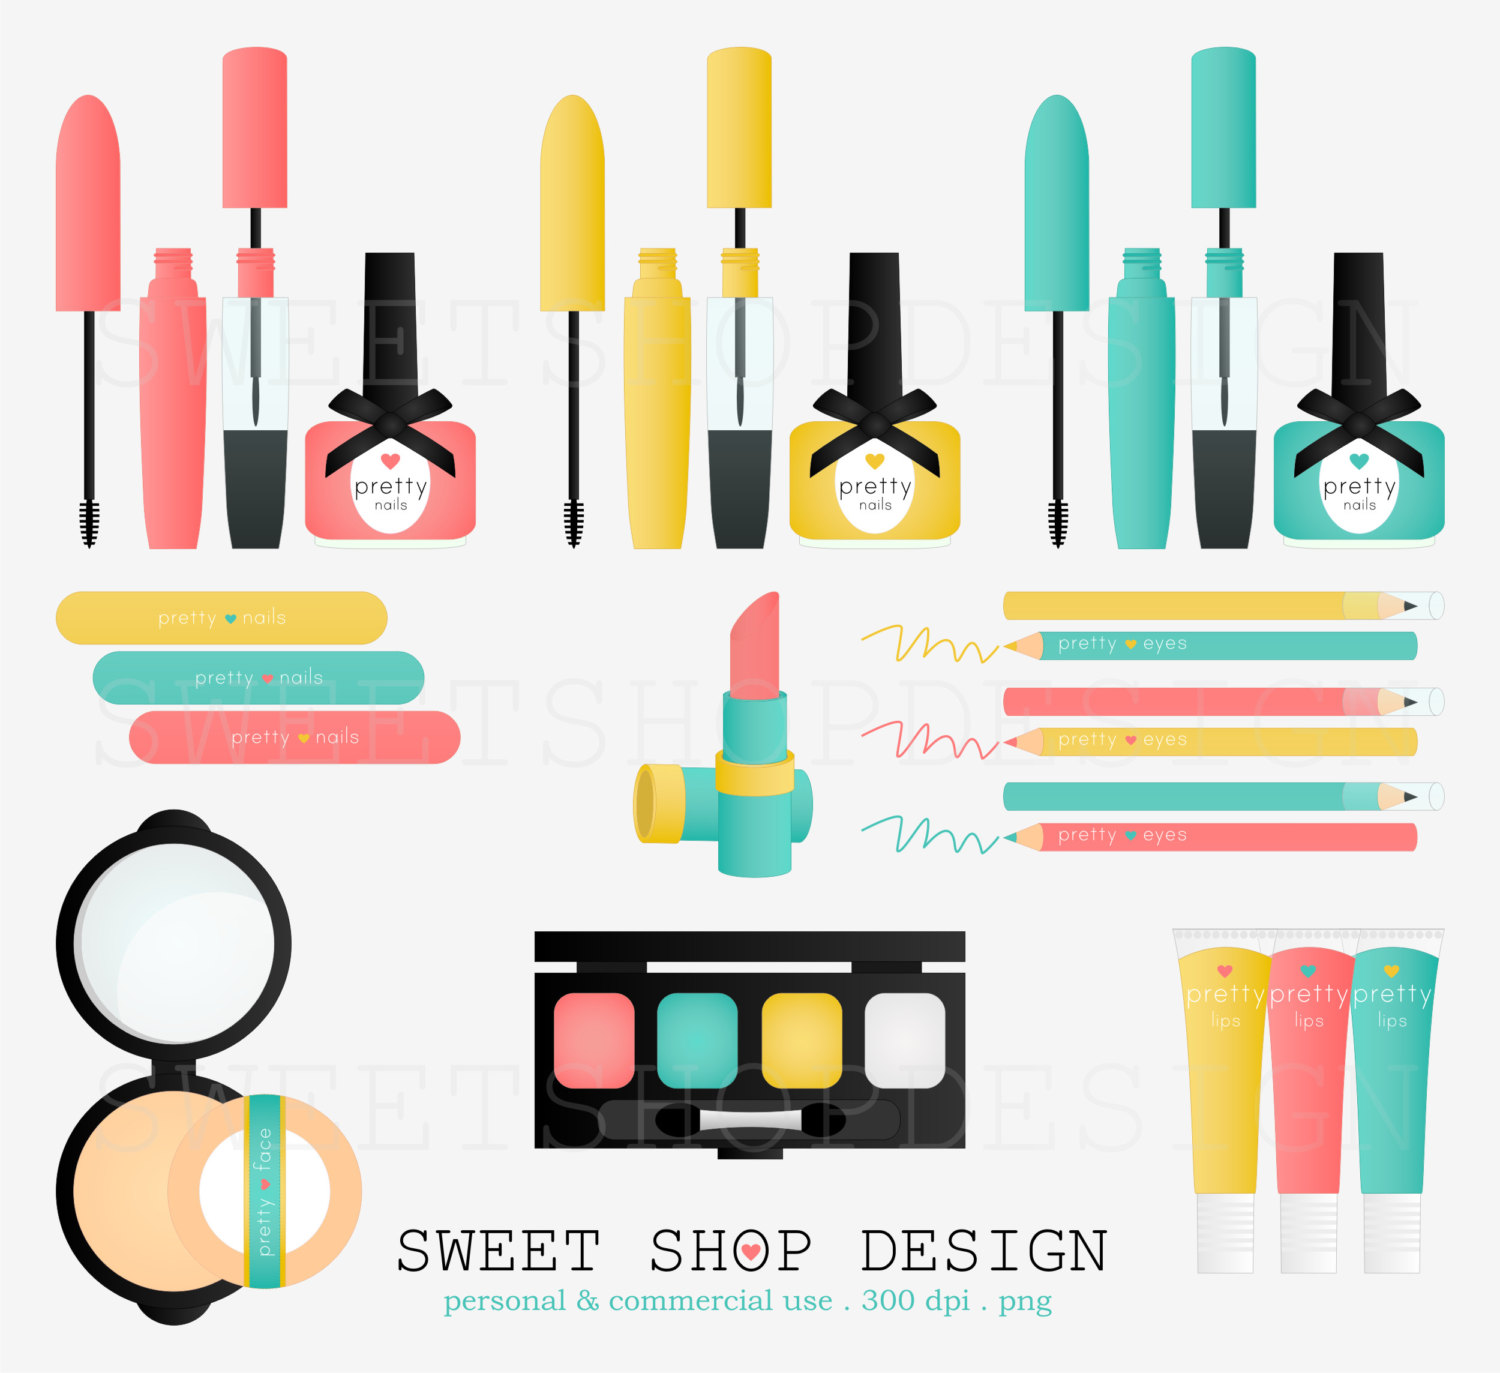 Cosmetology clipart makeup item. Pretty things clip art